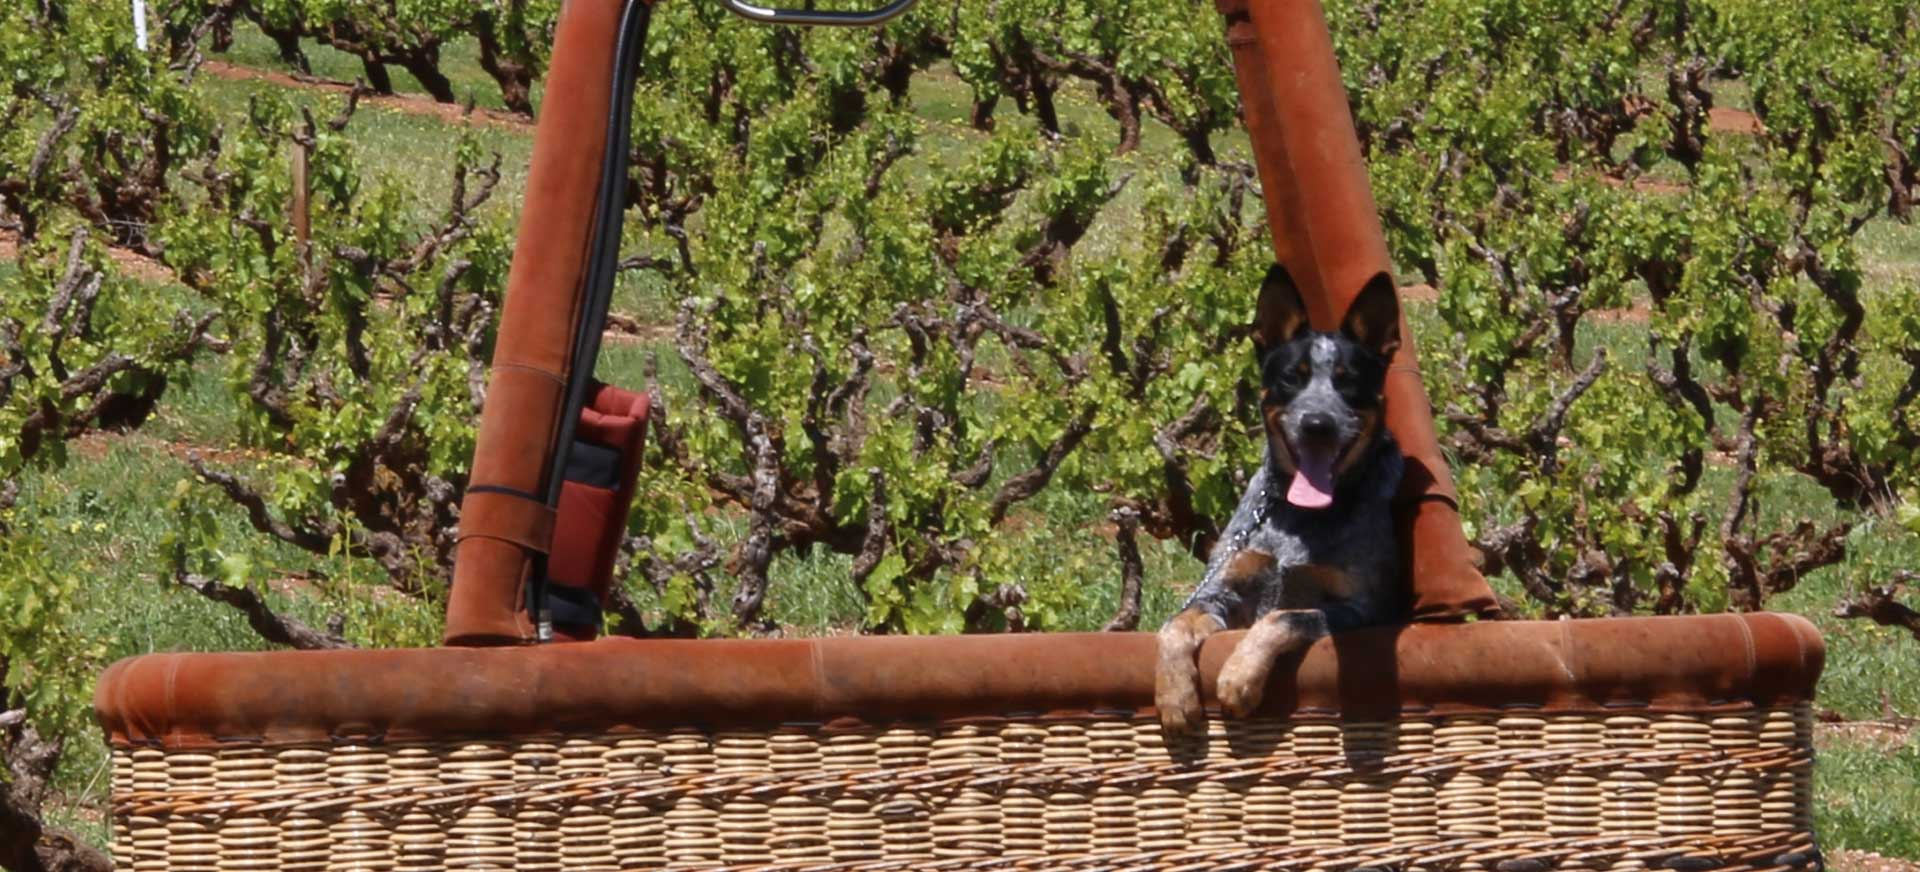 balloon-adventures-hot-air-balloon-flights-chief-pilot-and-dog-gibson-and-family7